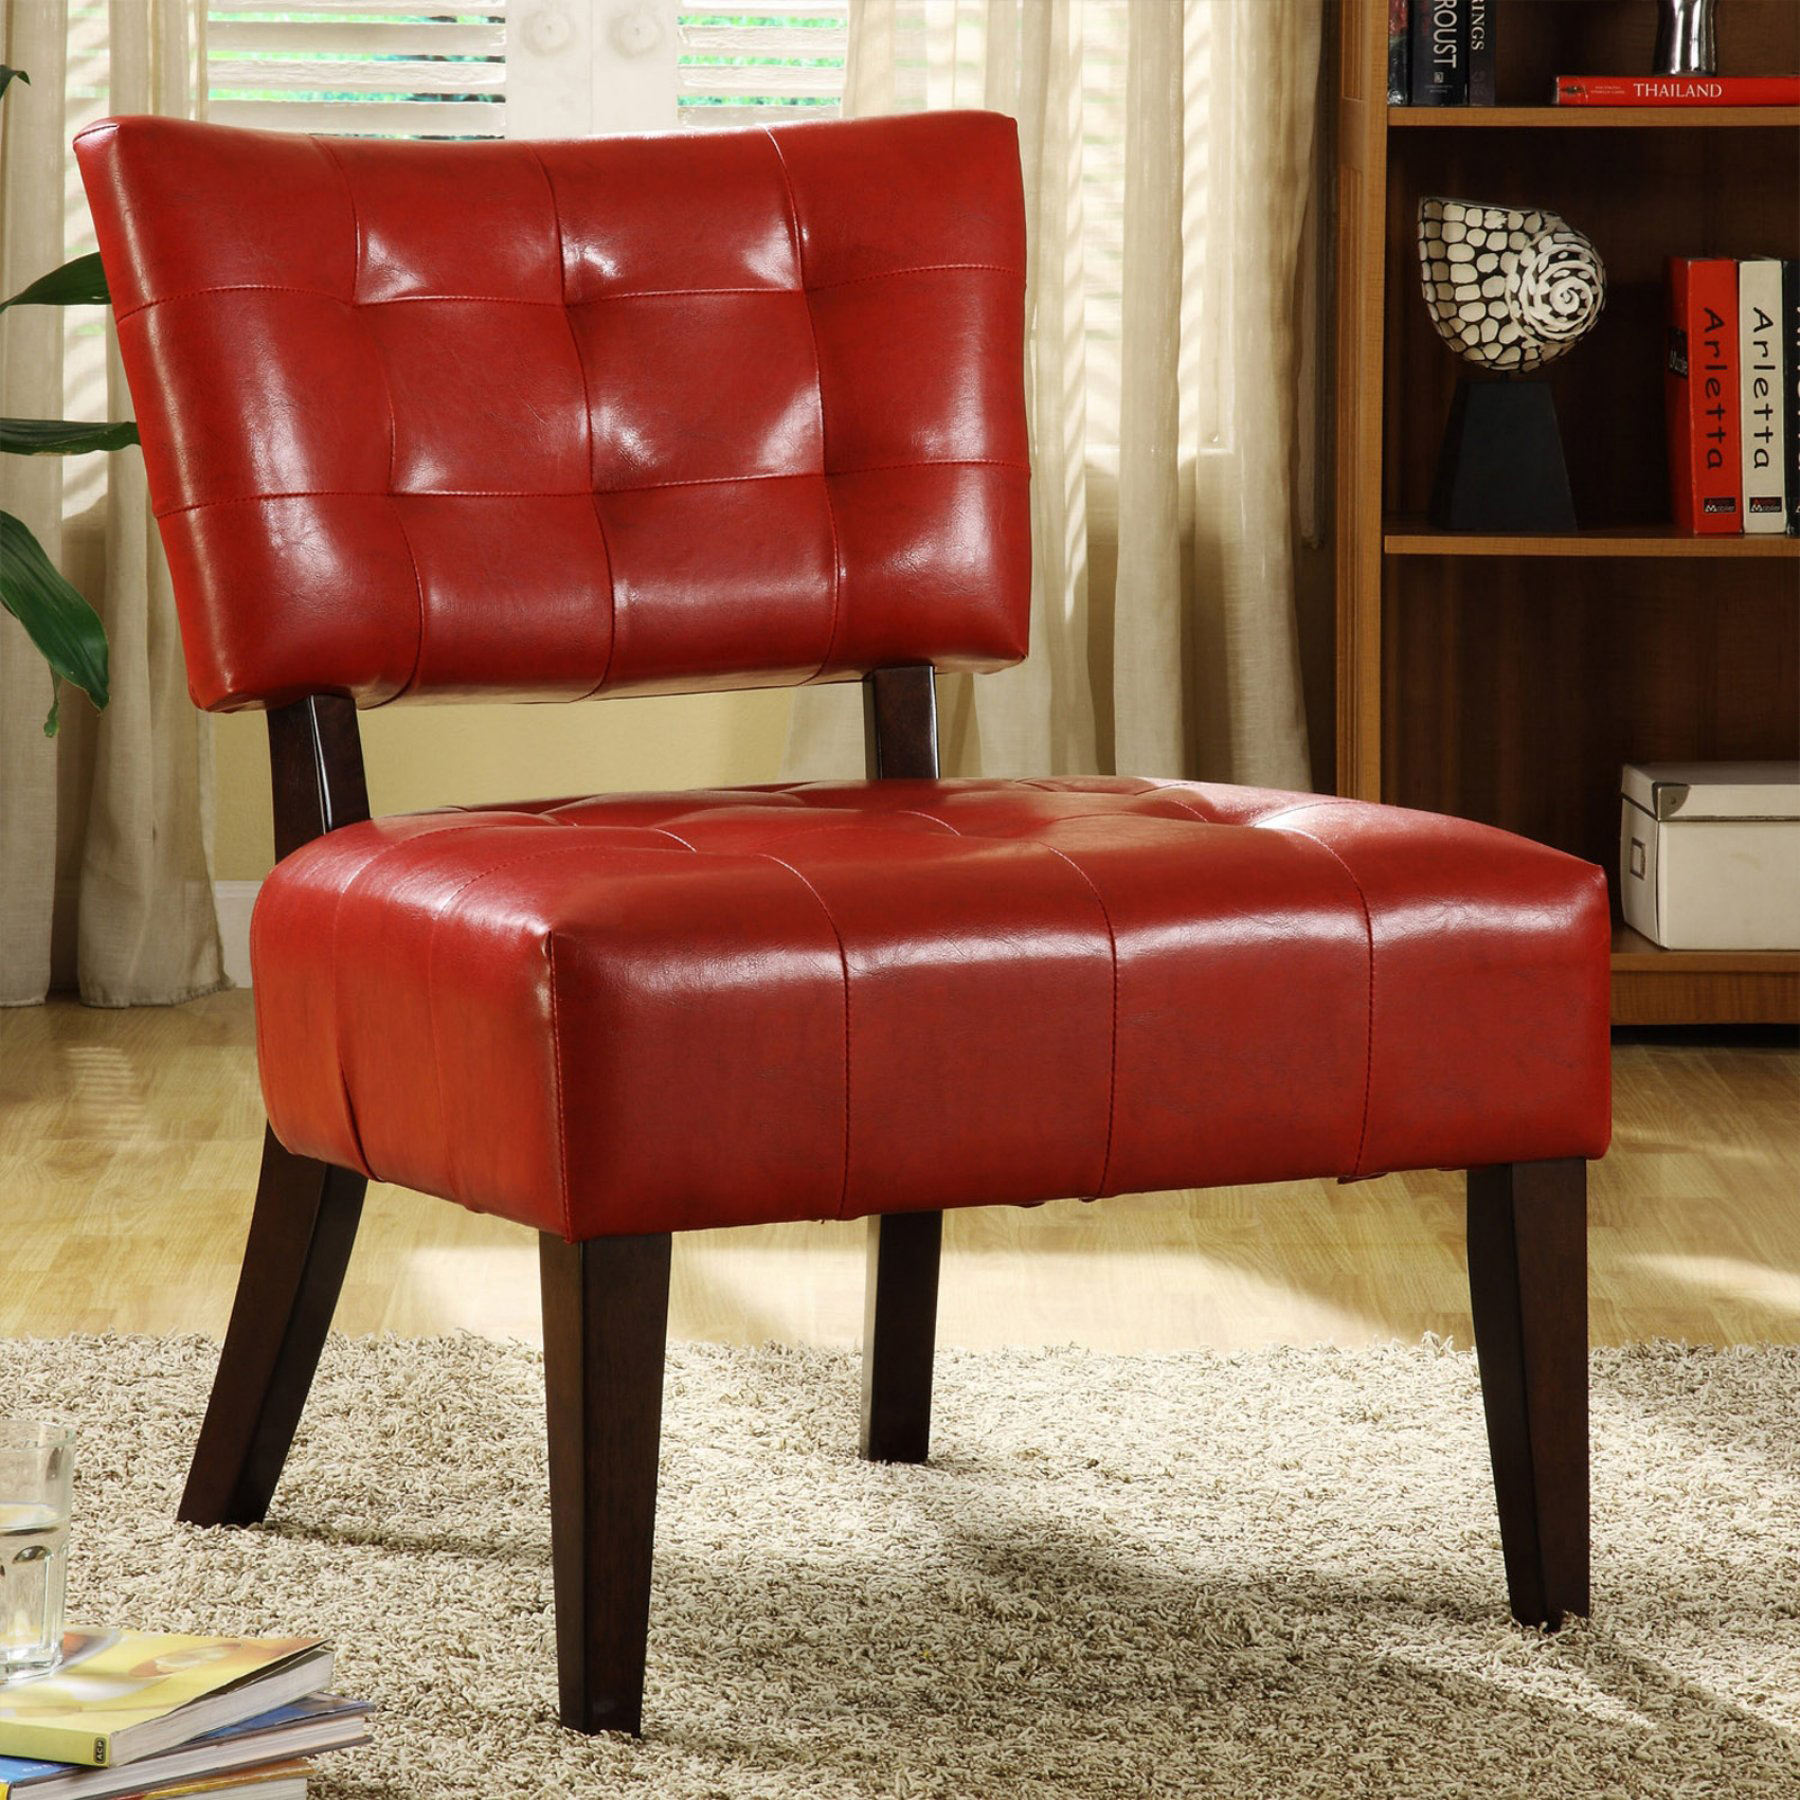 Tufted Accent Chair Red Faux Leather Walmart